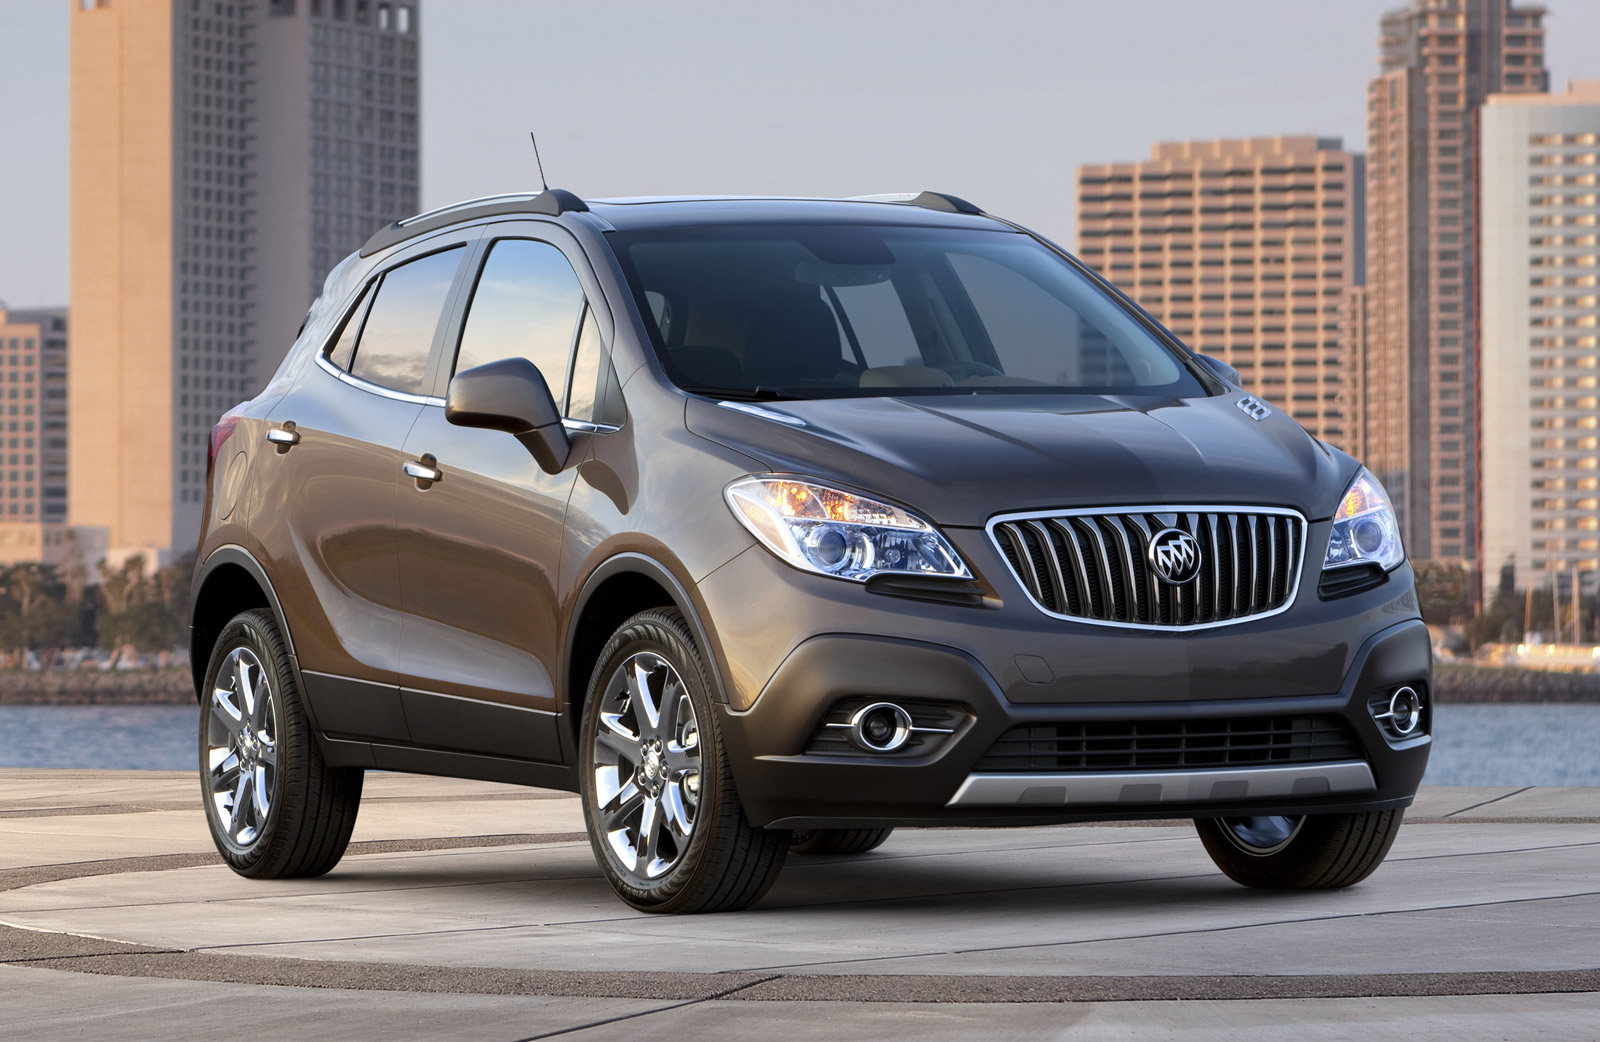 2013 Buick Encore Review, Ratings, Specs, Prices, And